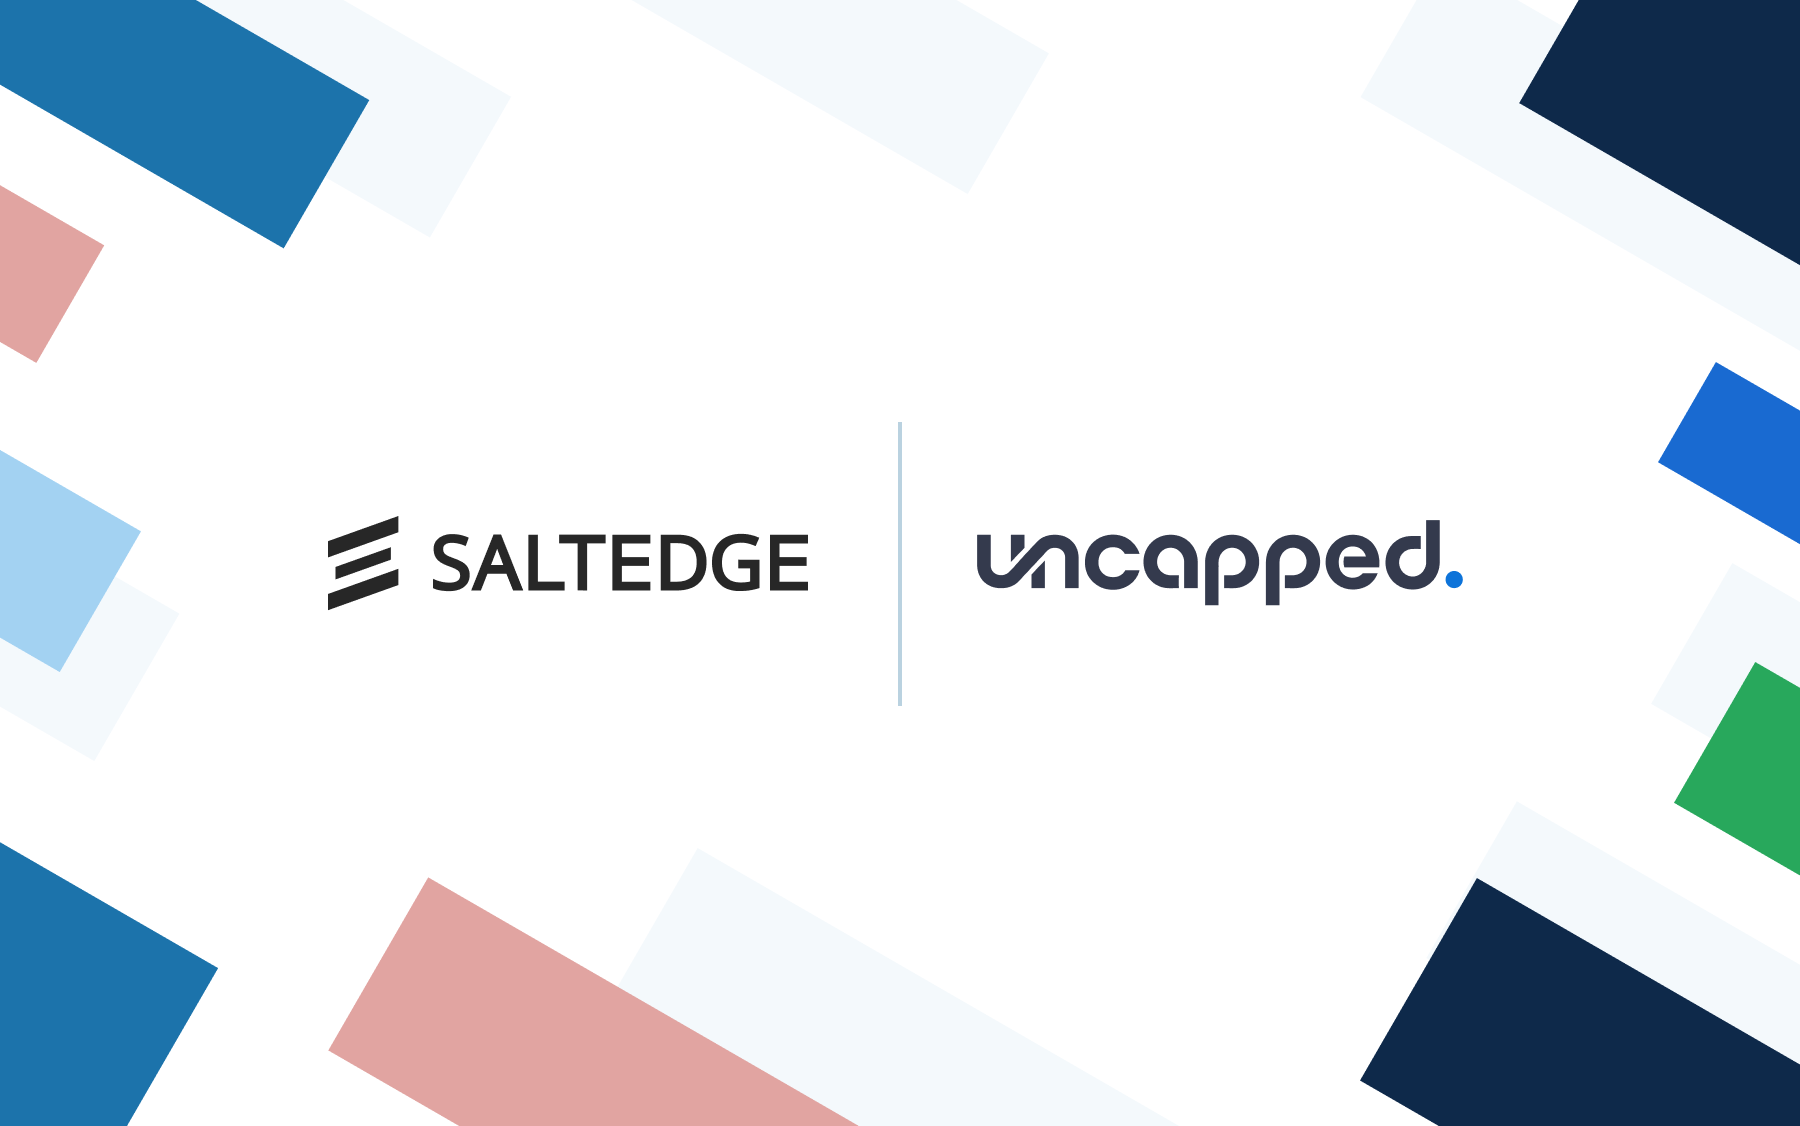 Salt Edge to Accelerate Uncapped's Eligibility Checks for Funding